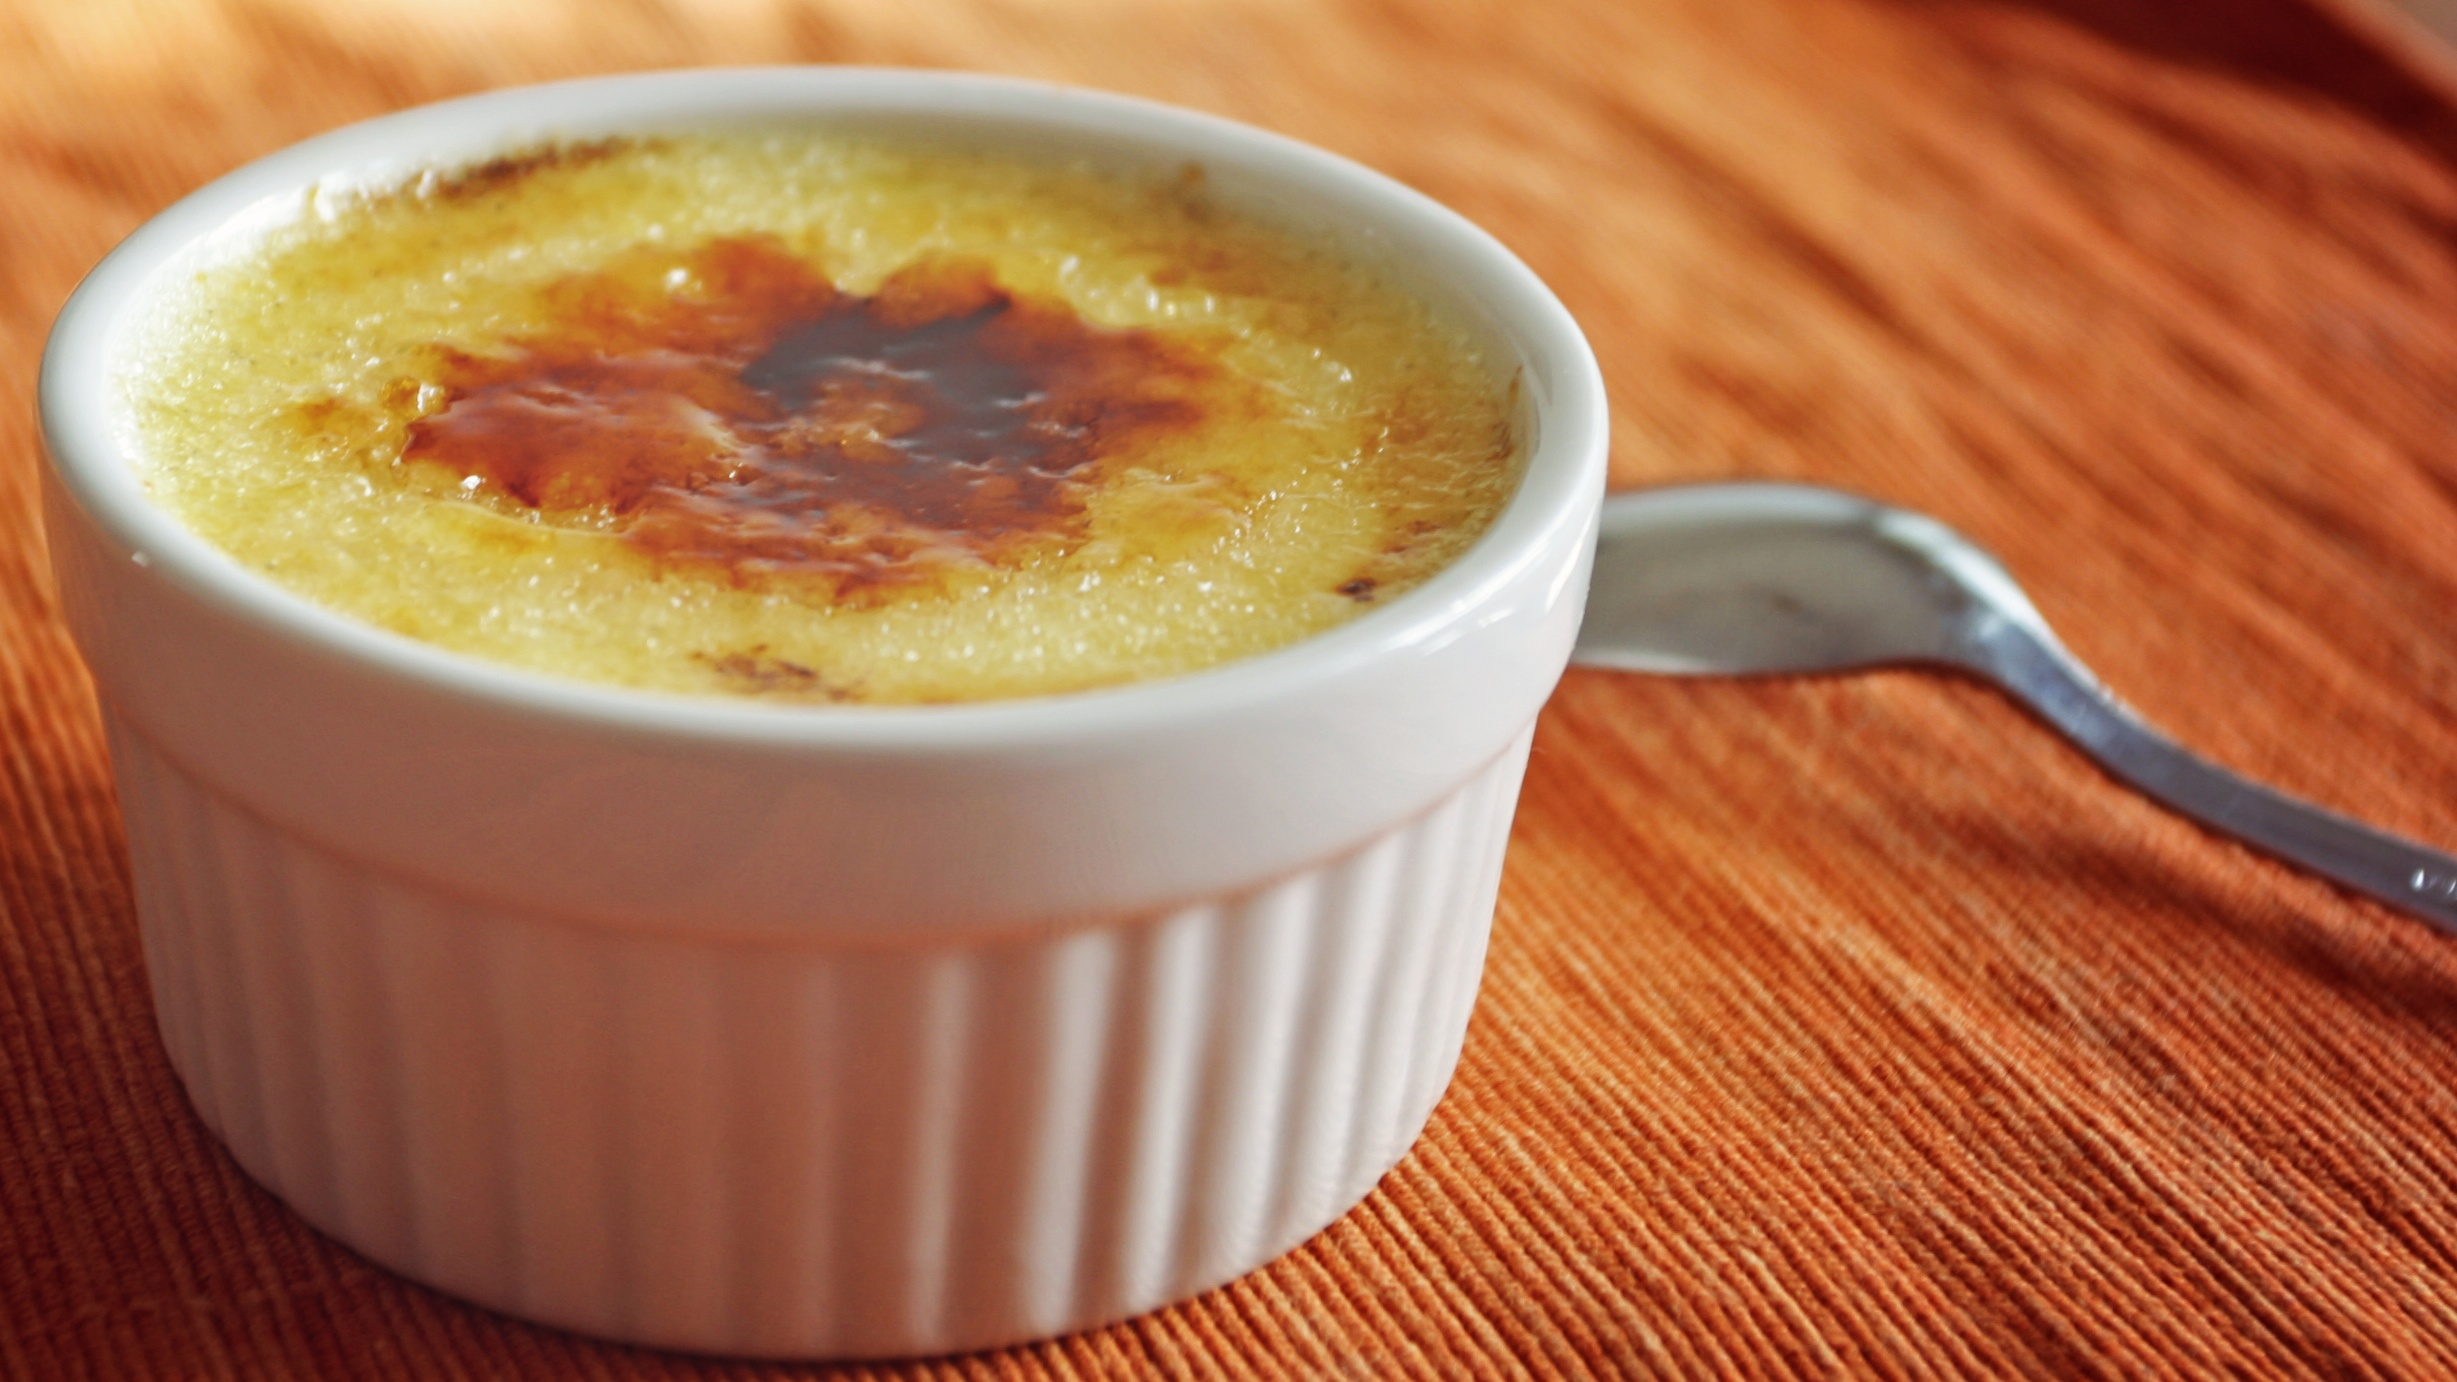 This Easy 3-Ingredient Creme Brûlée Will Make You Feel Like You're at a Fancy French Restaurant